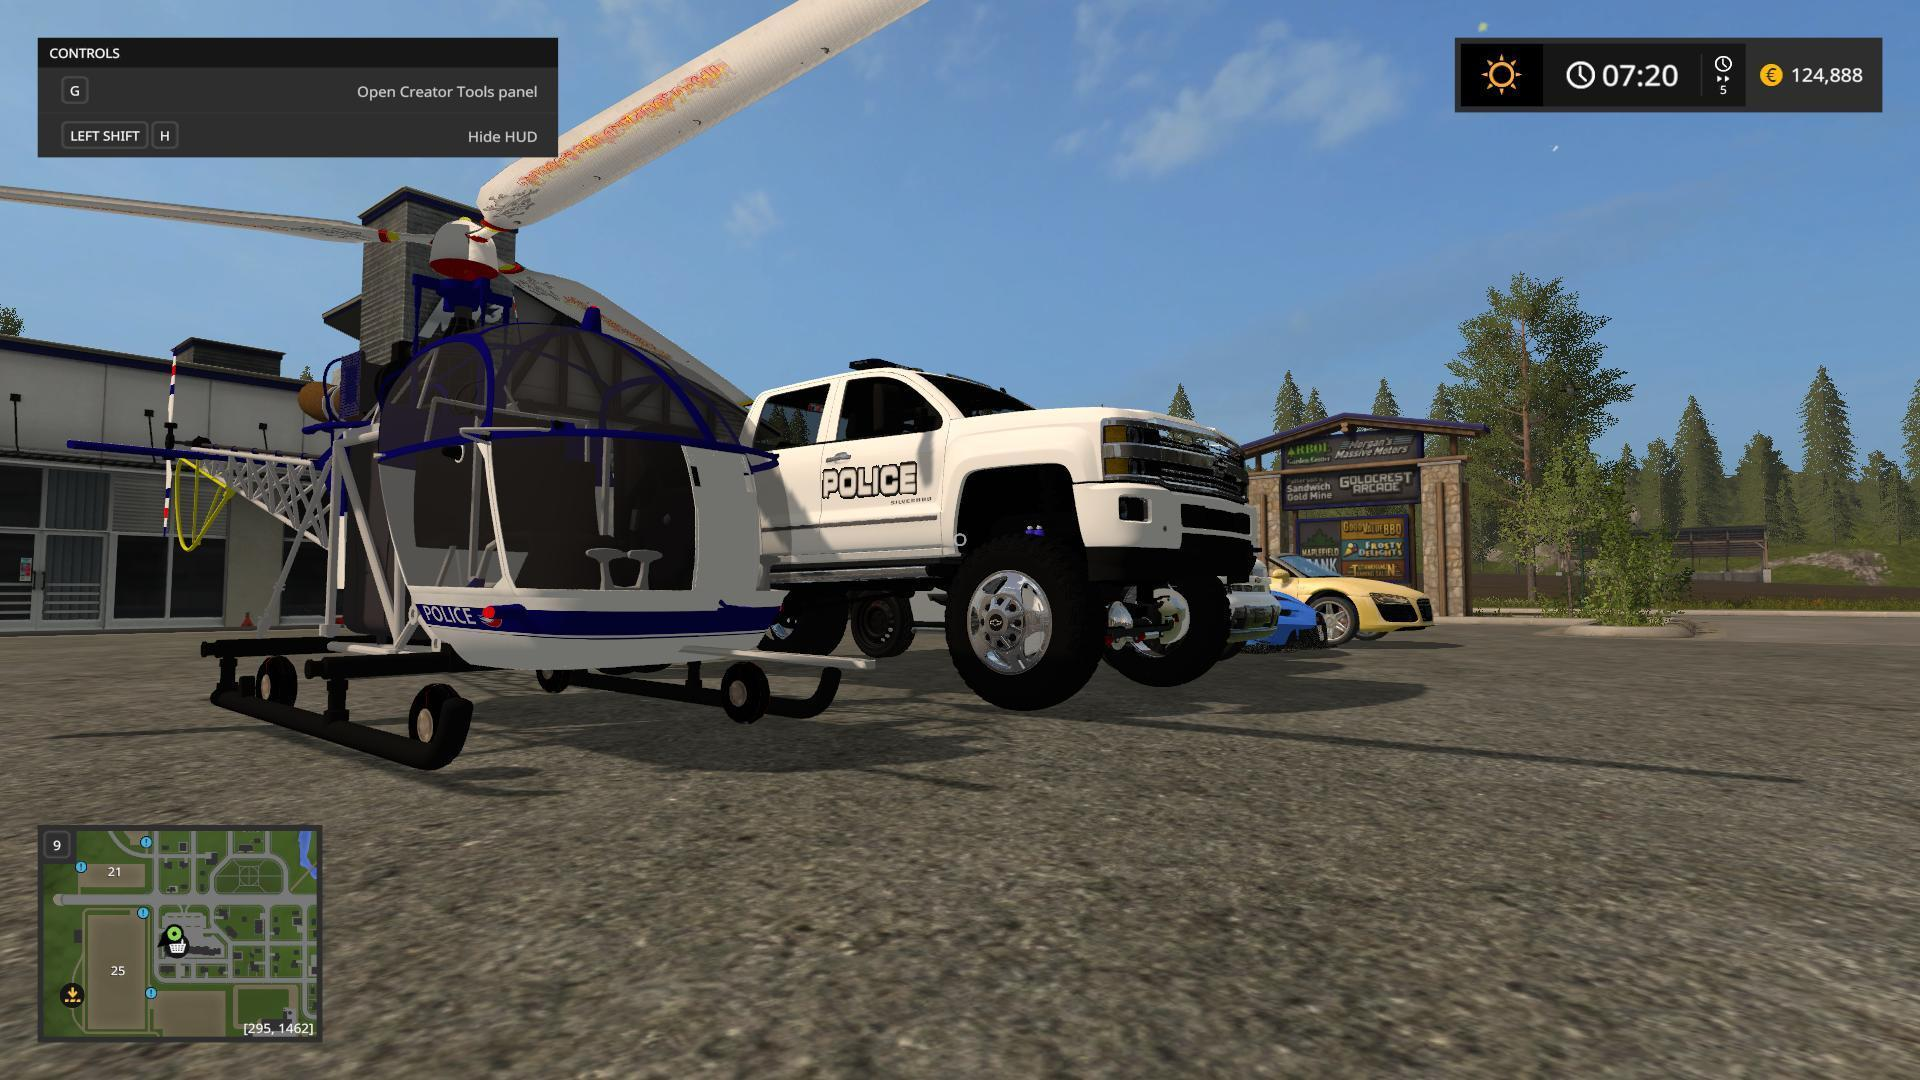 Police pack farming simulator 17 v1 0